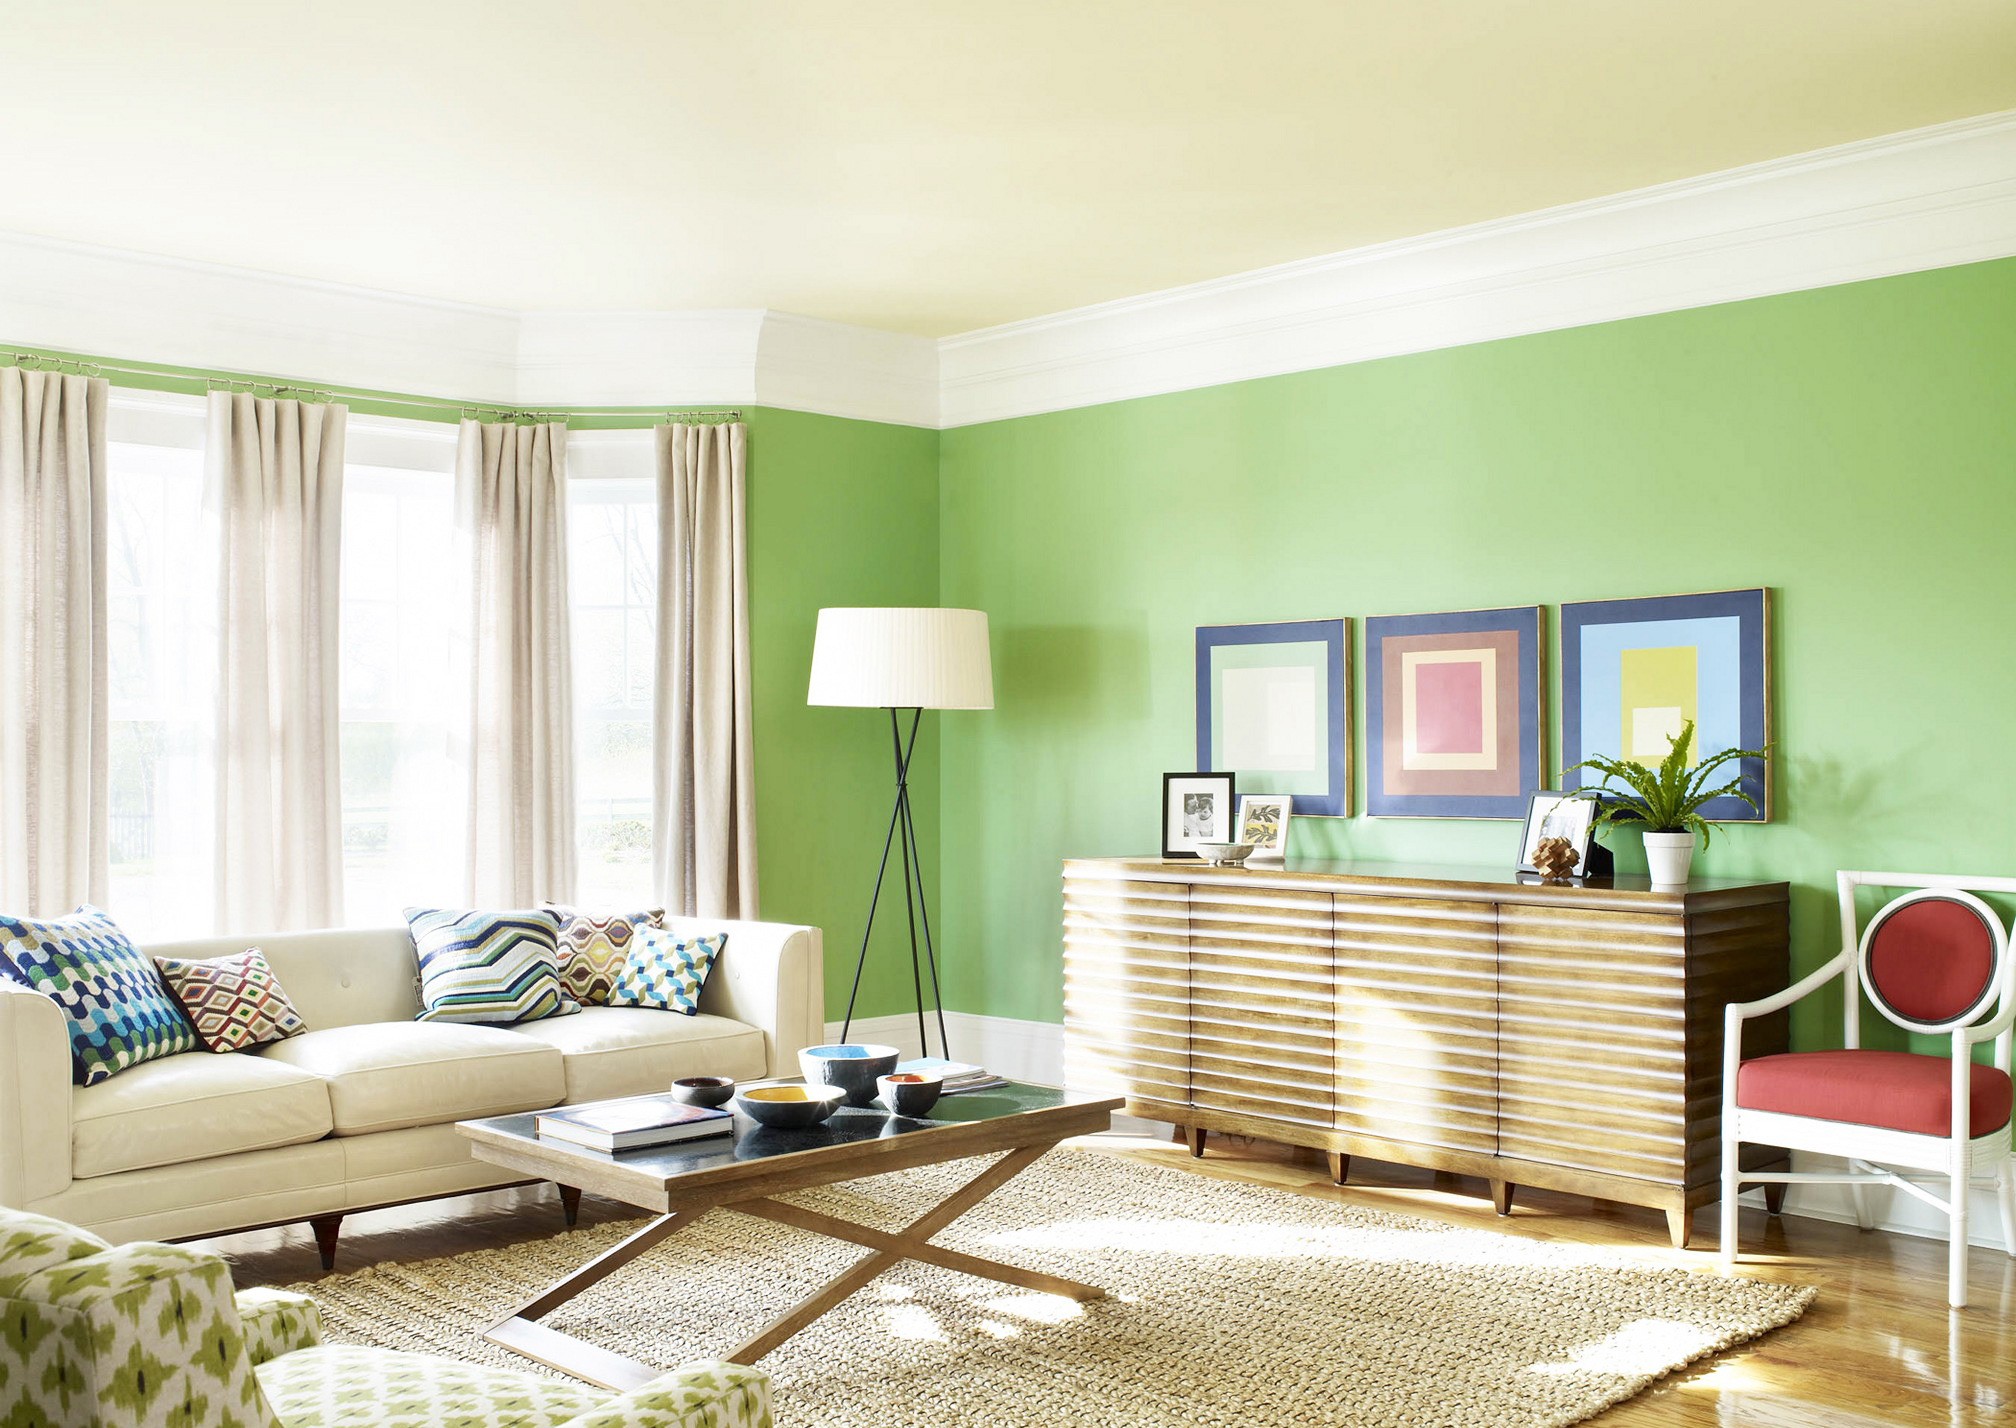 best-interior-paint-colors-for-living-room-paint-ideas-with-living-room-colors-with-cool-colors